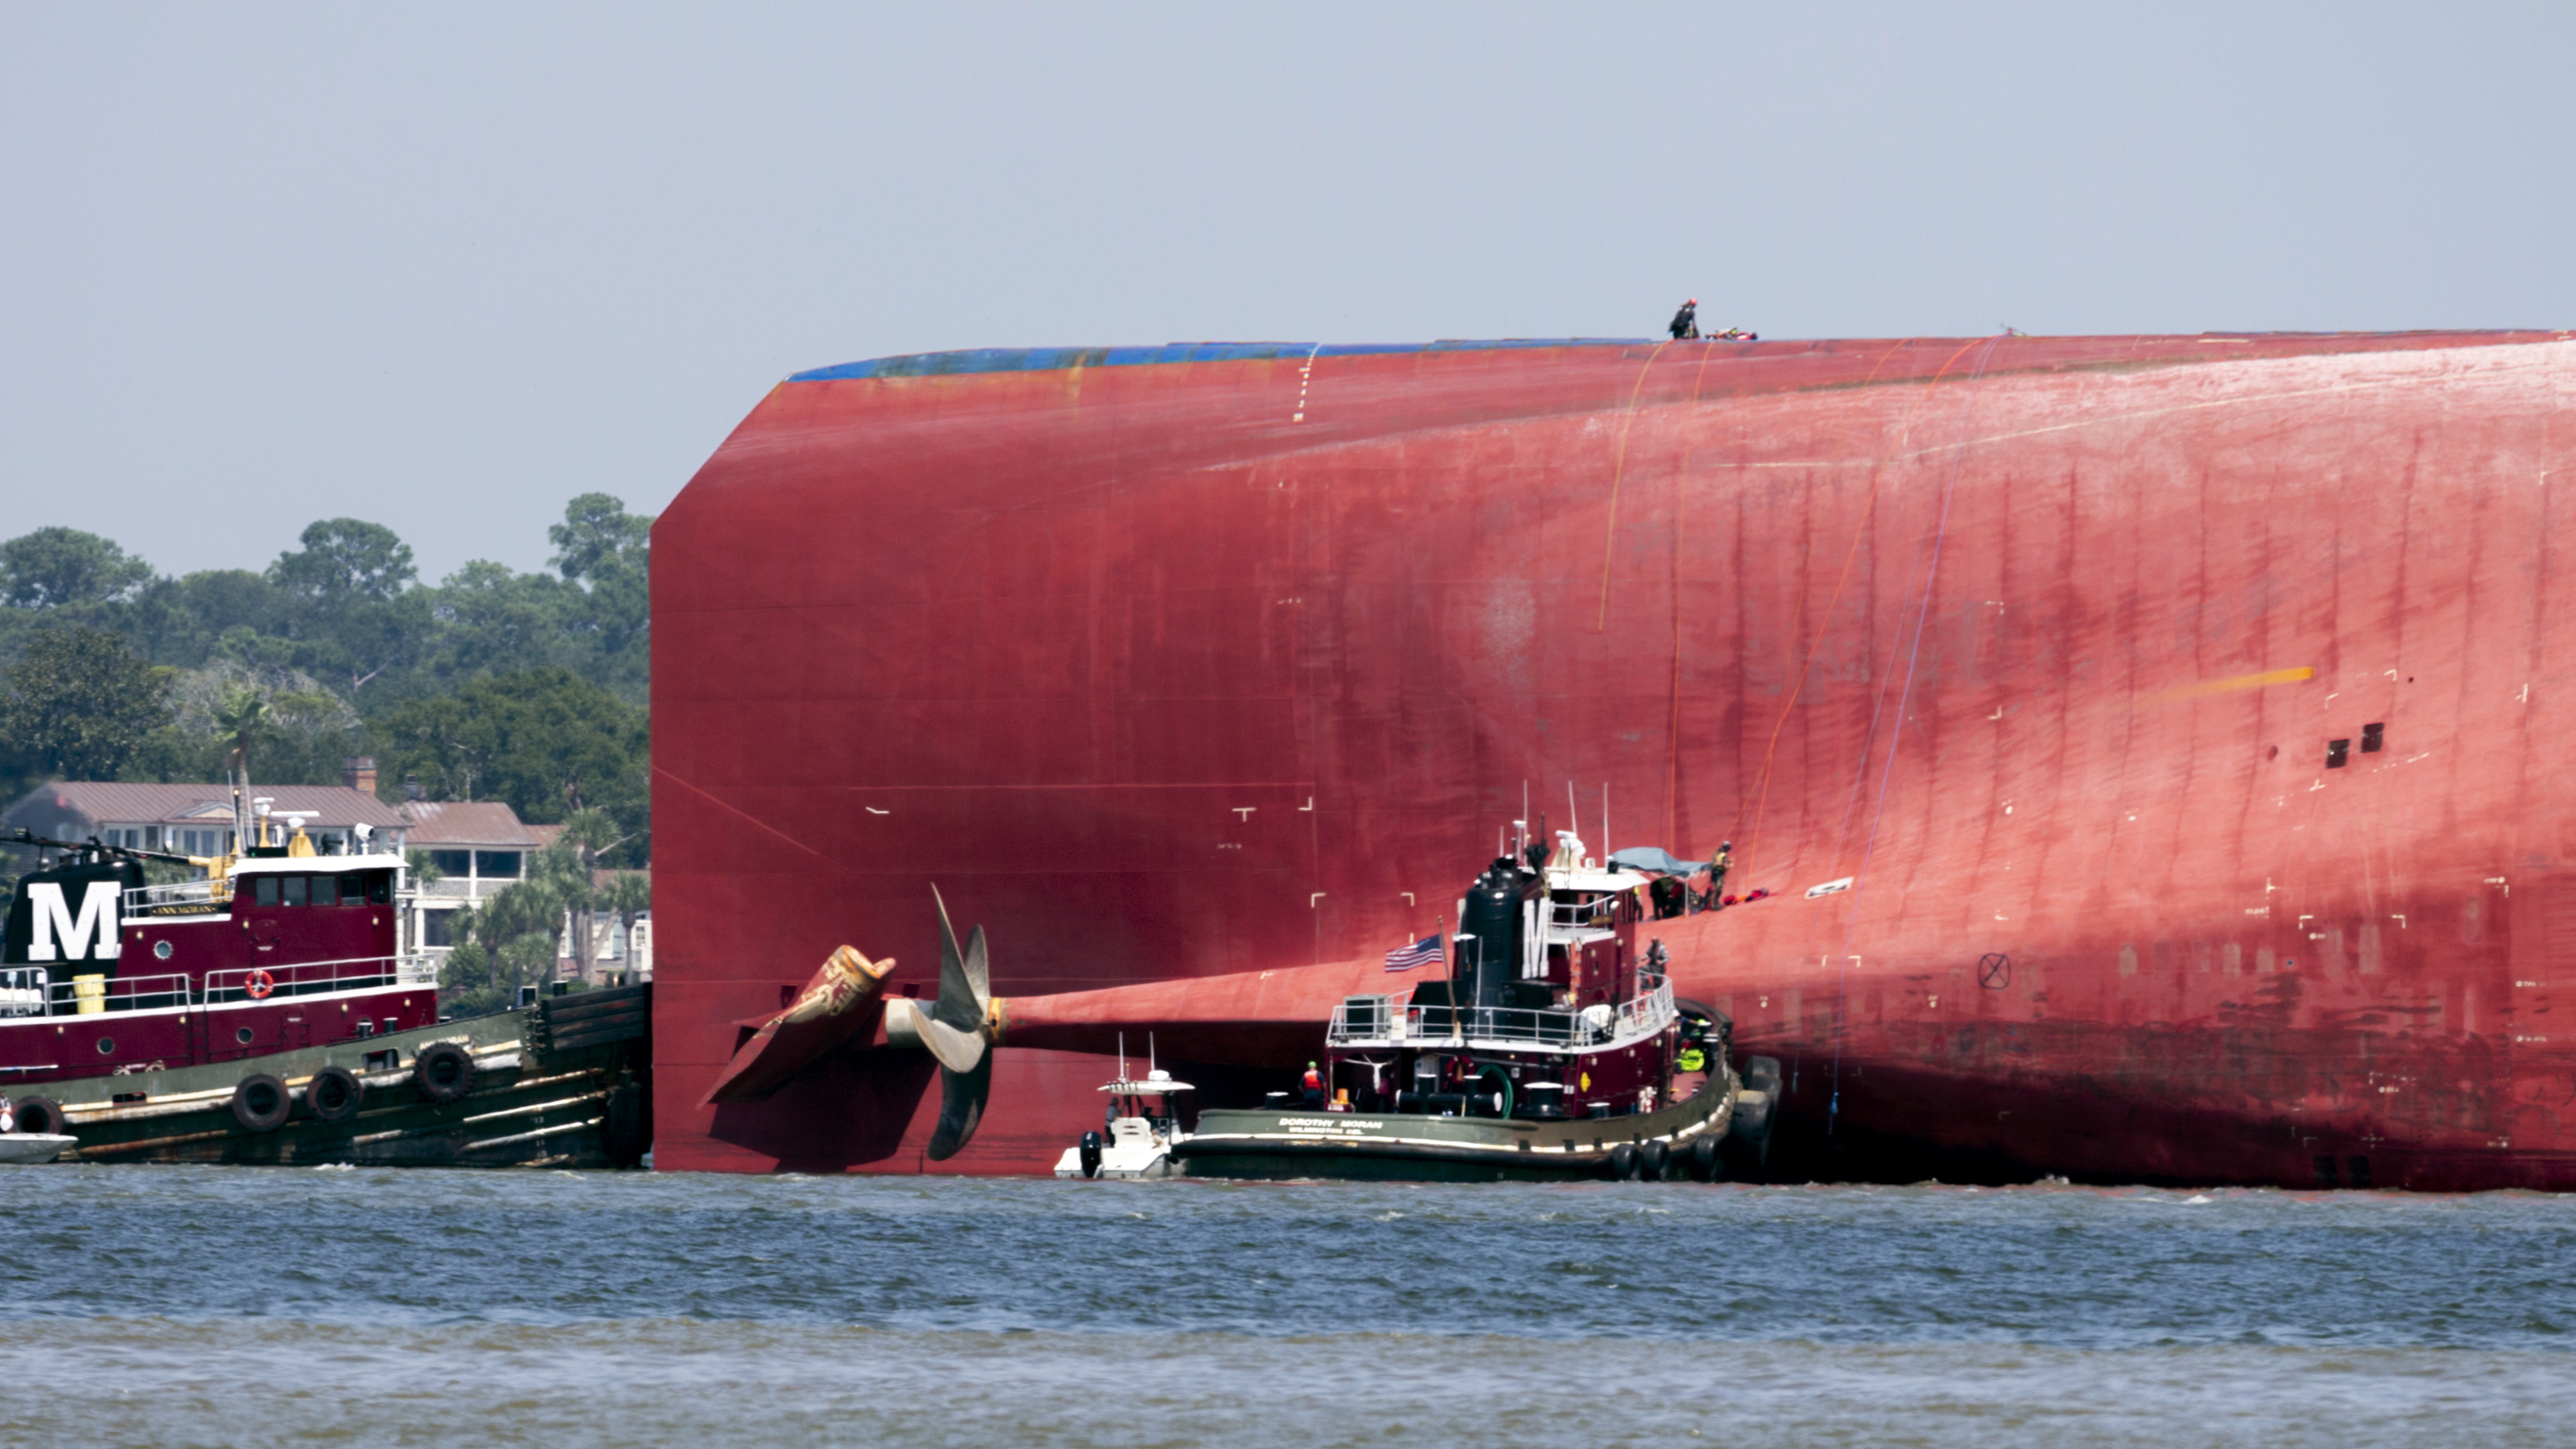 Final crew member rescued from cargo ship, Coast Guard says